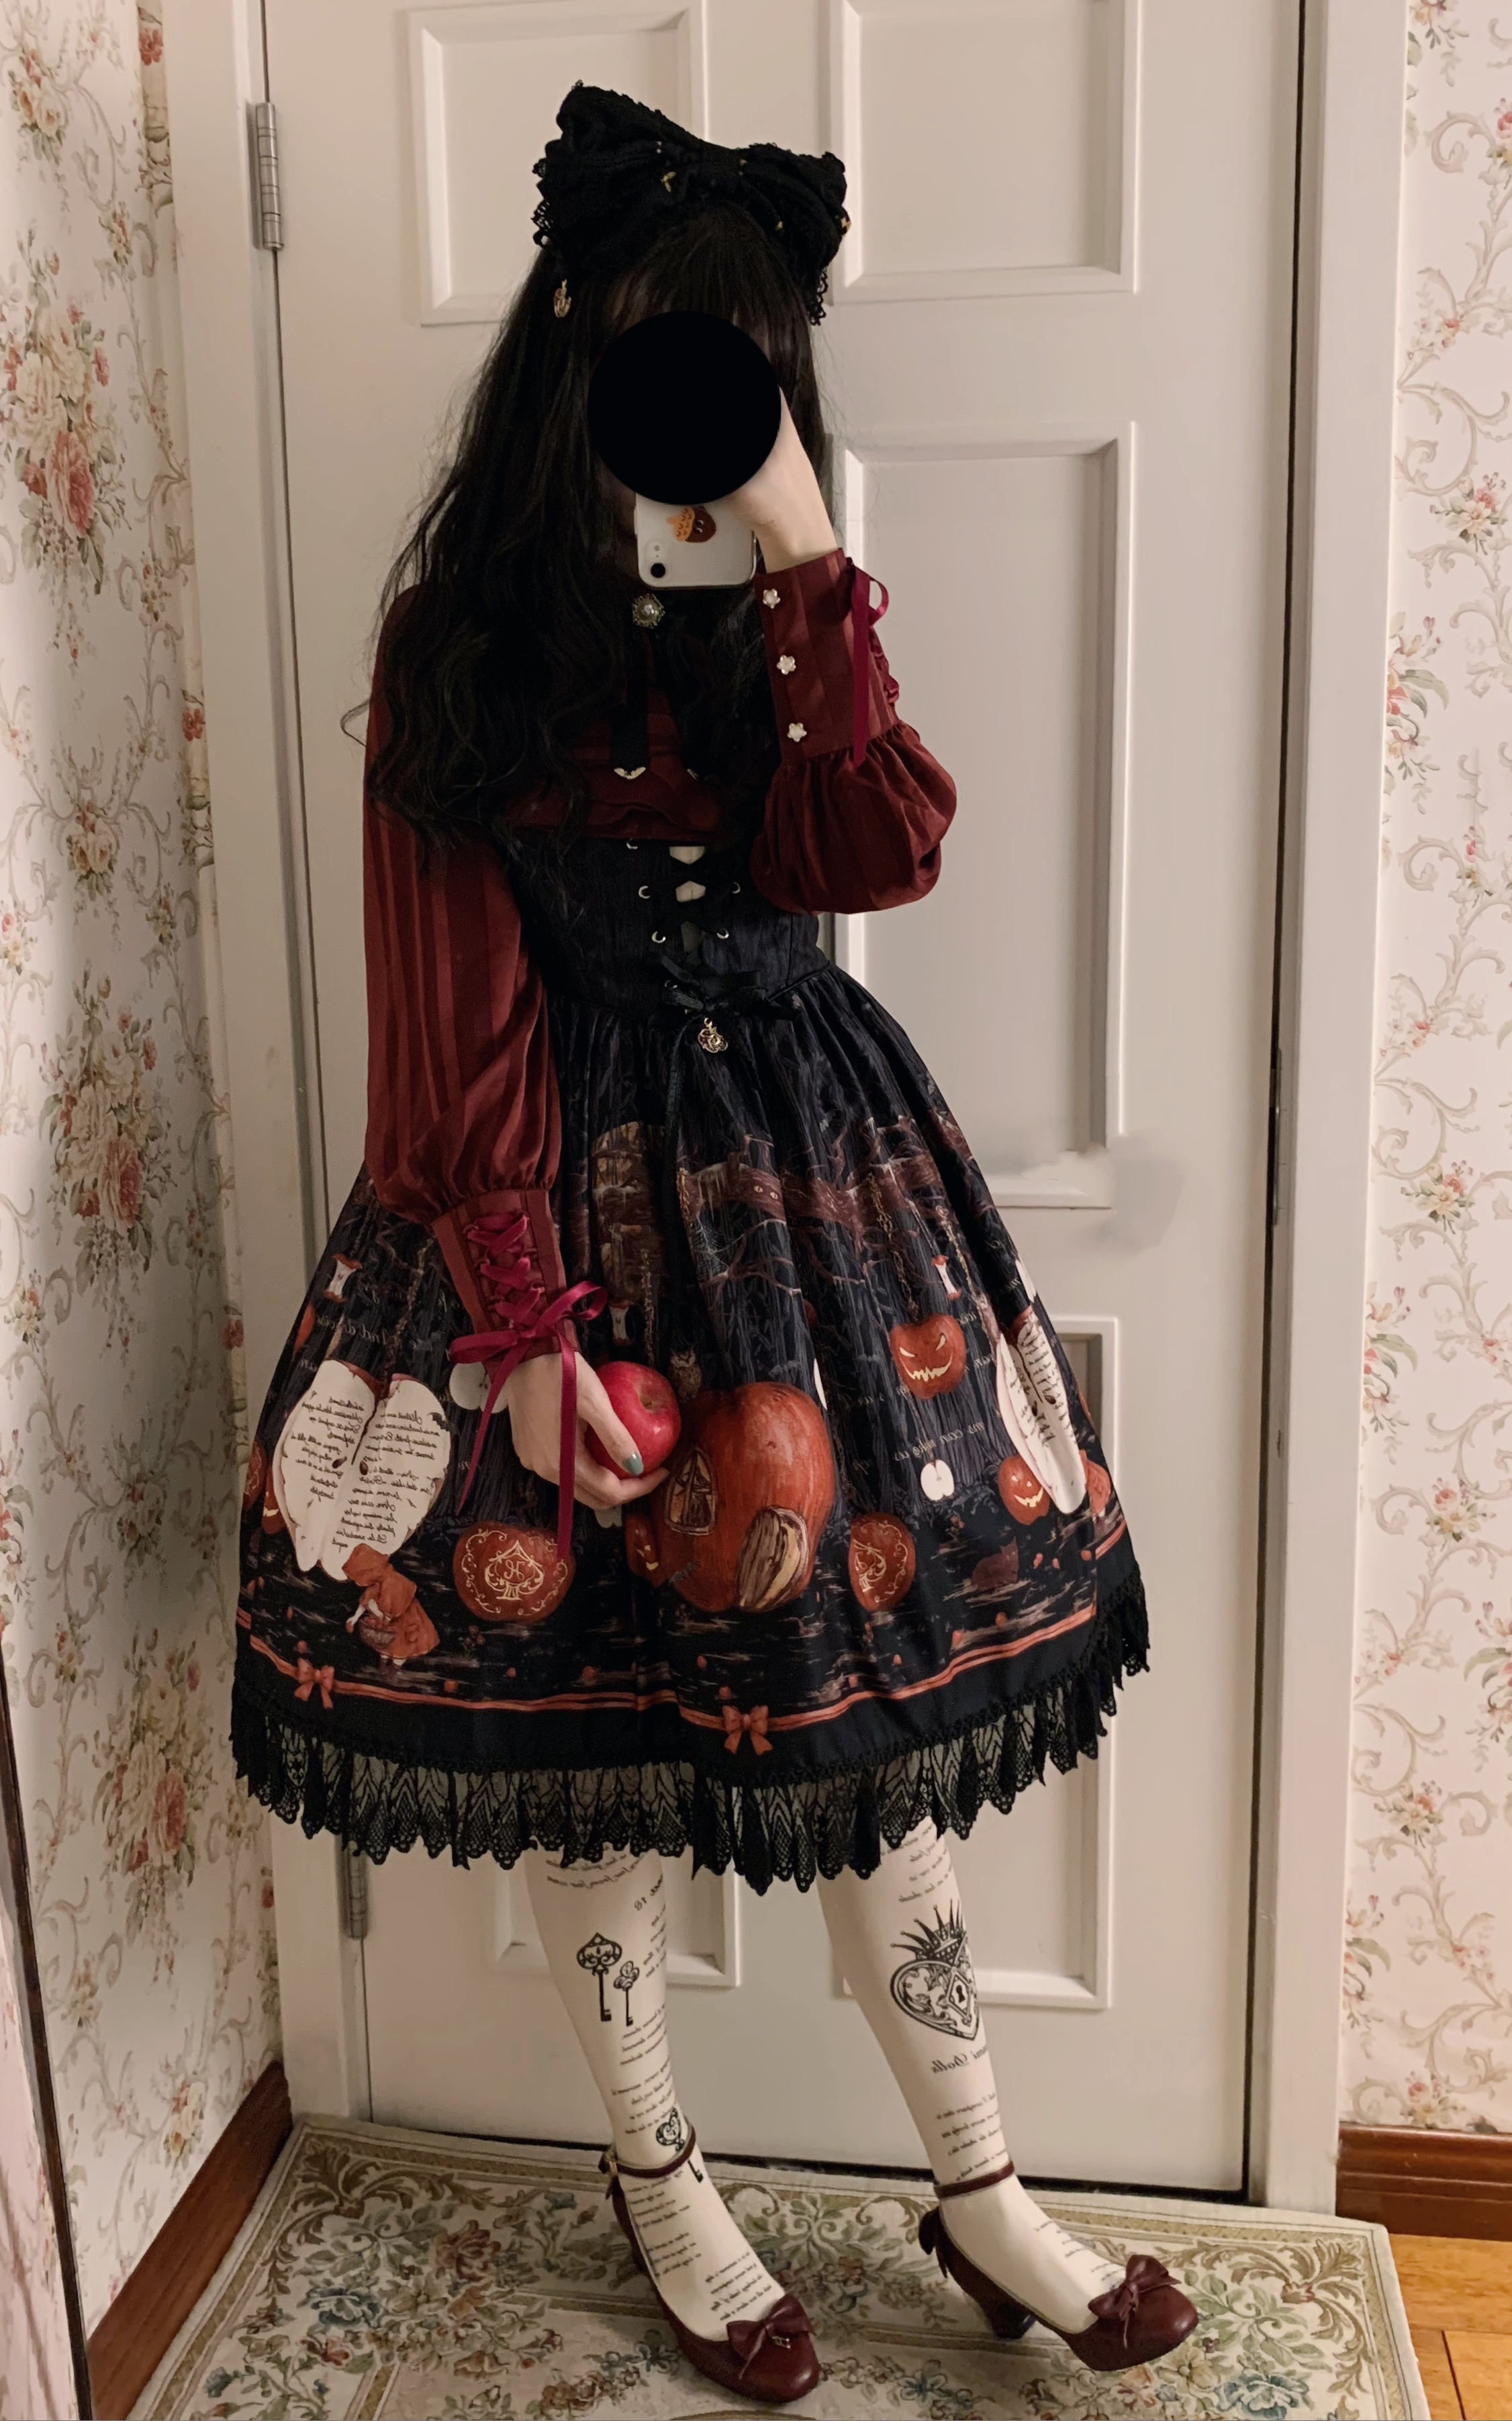 [in stock] light light one Lolita original leg cuff water towel five color shirt spring and Autumn